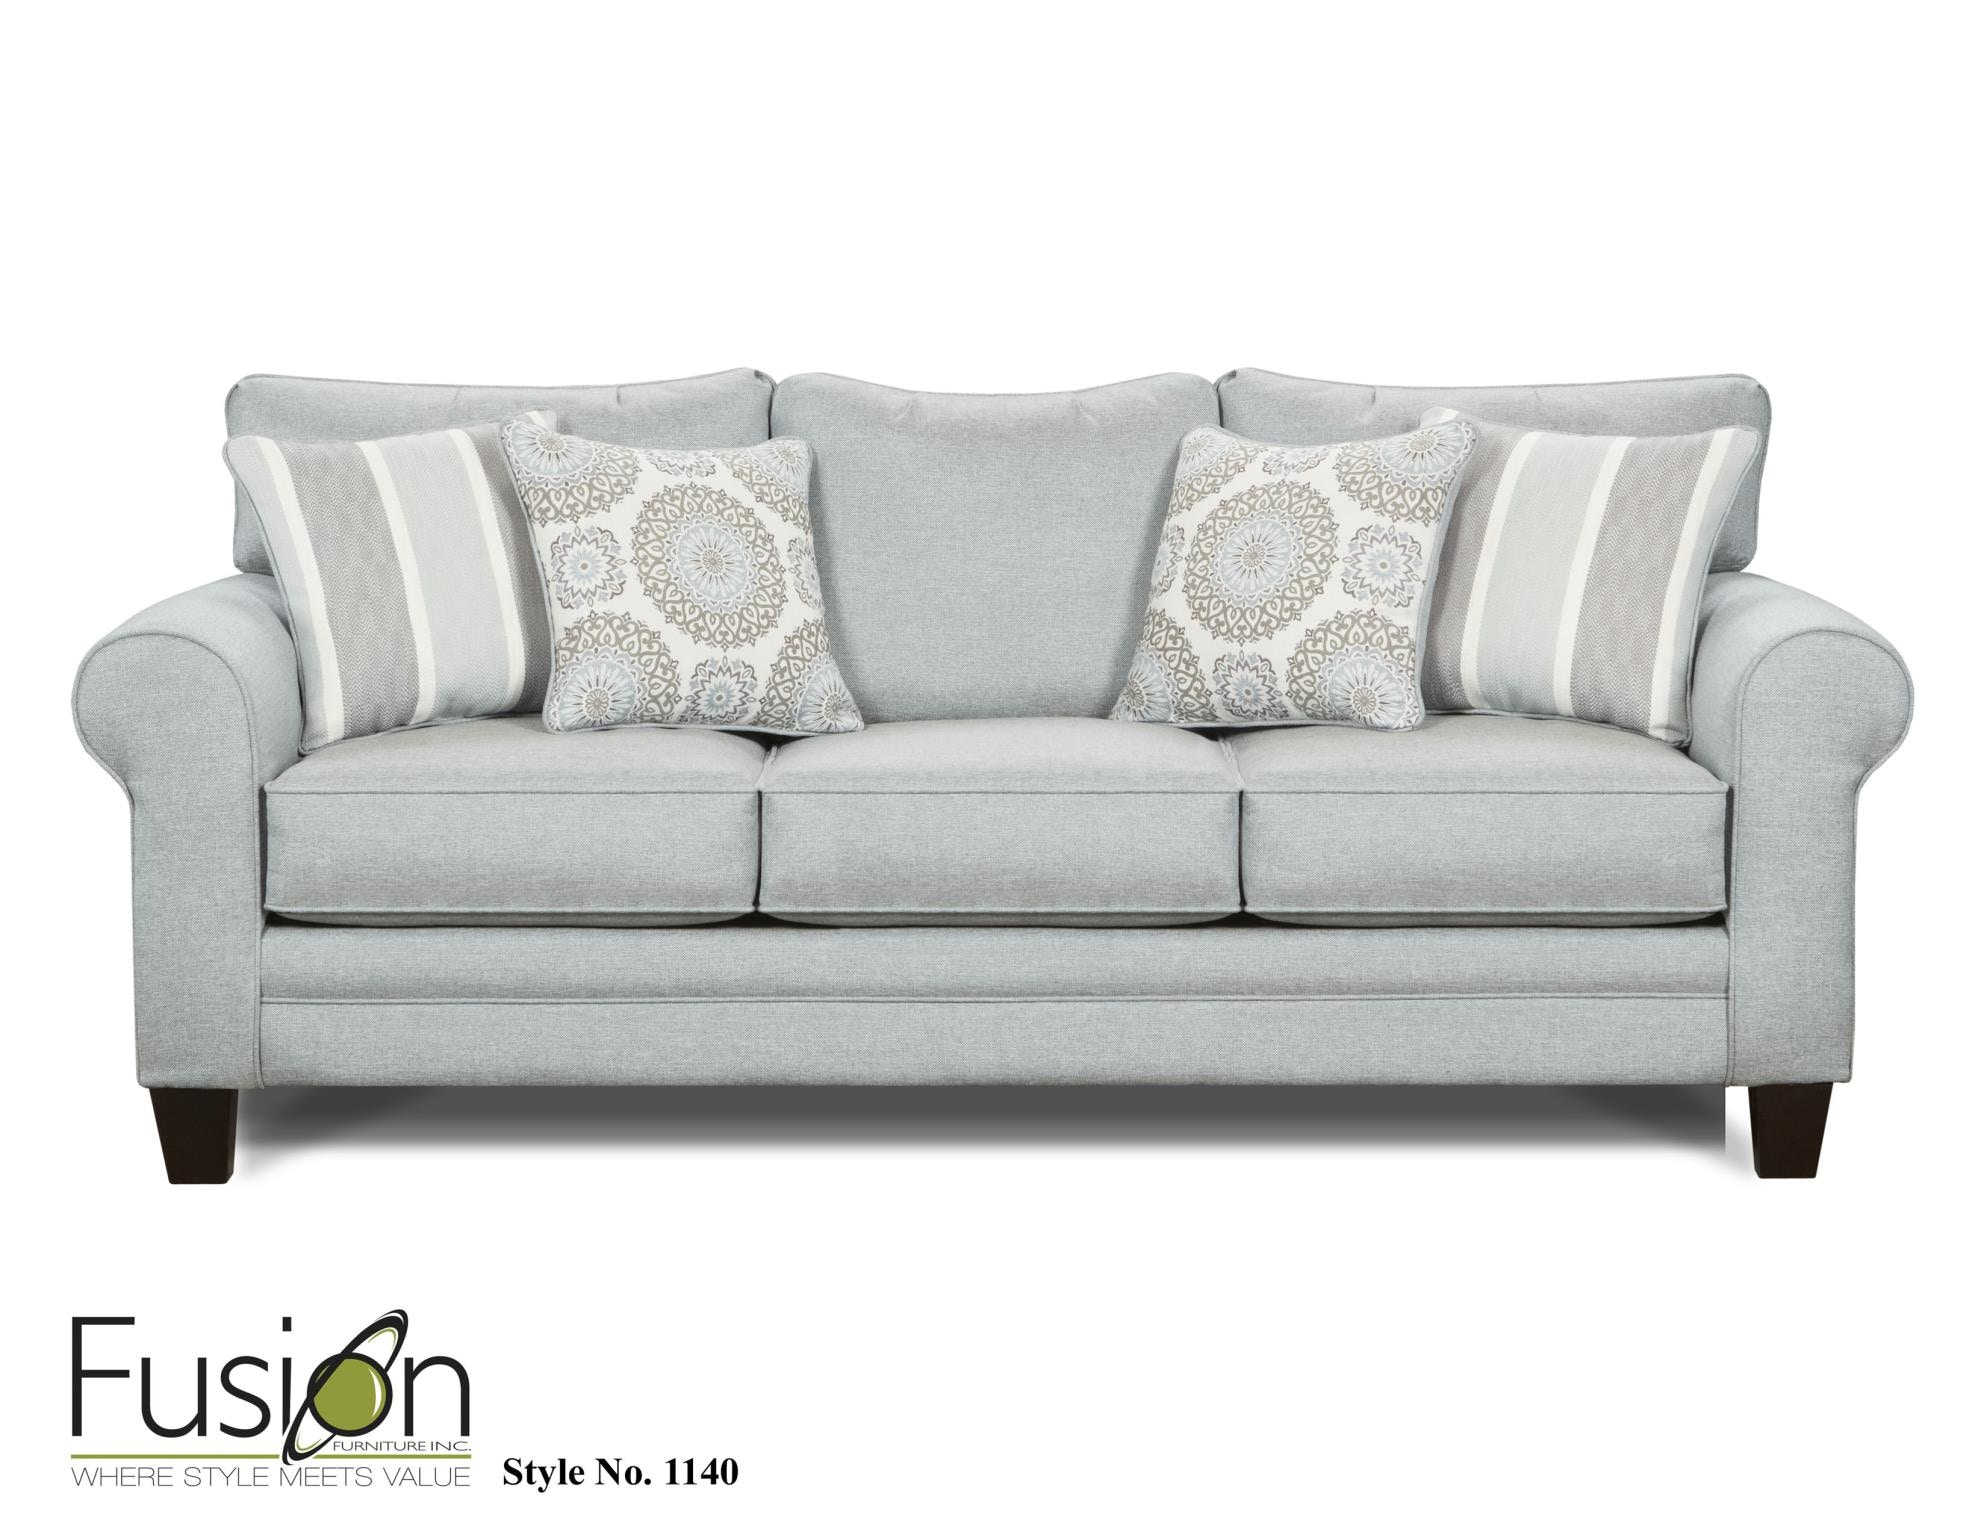 sofa retailers birmingham best fabric protector fusion living room the 1140 grande mist high point